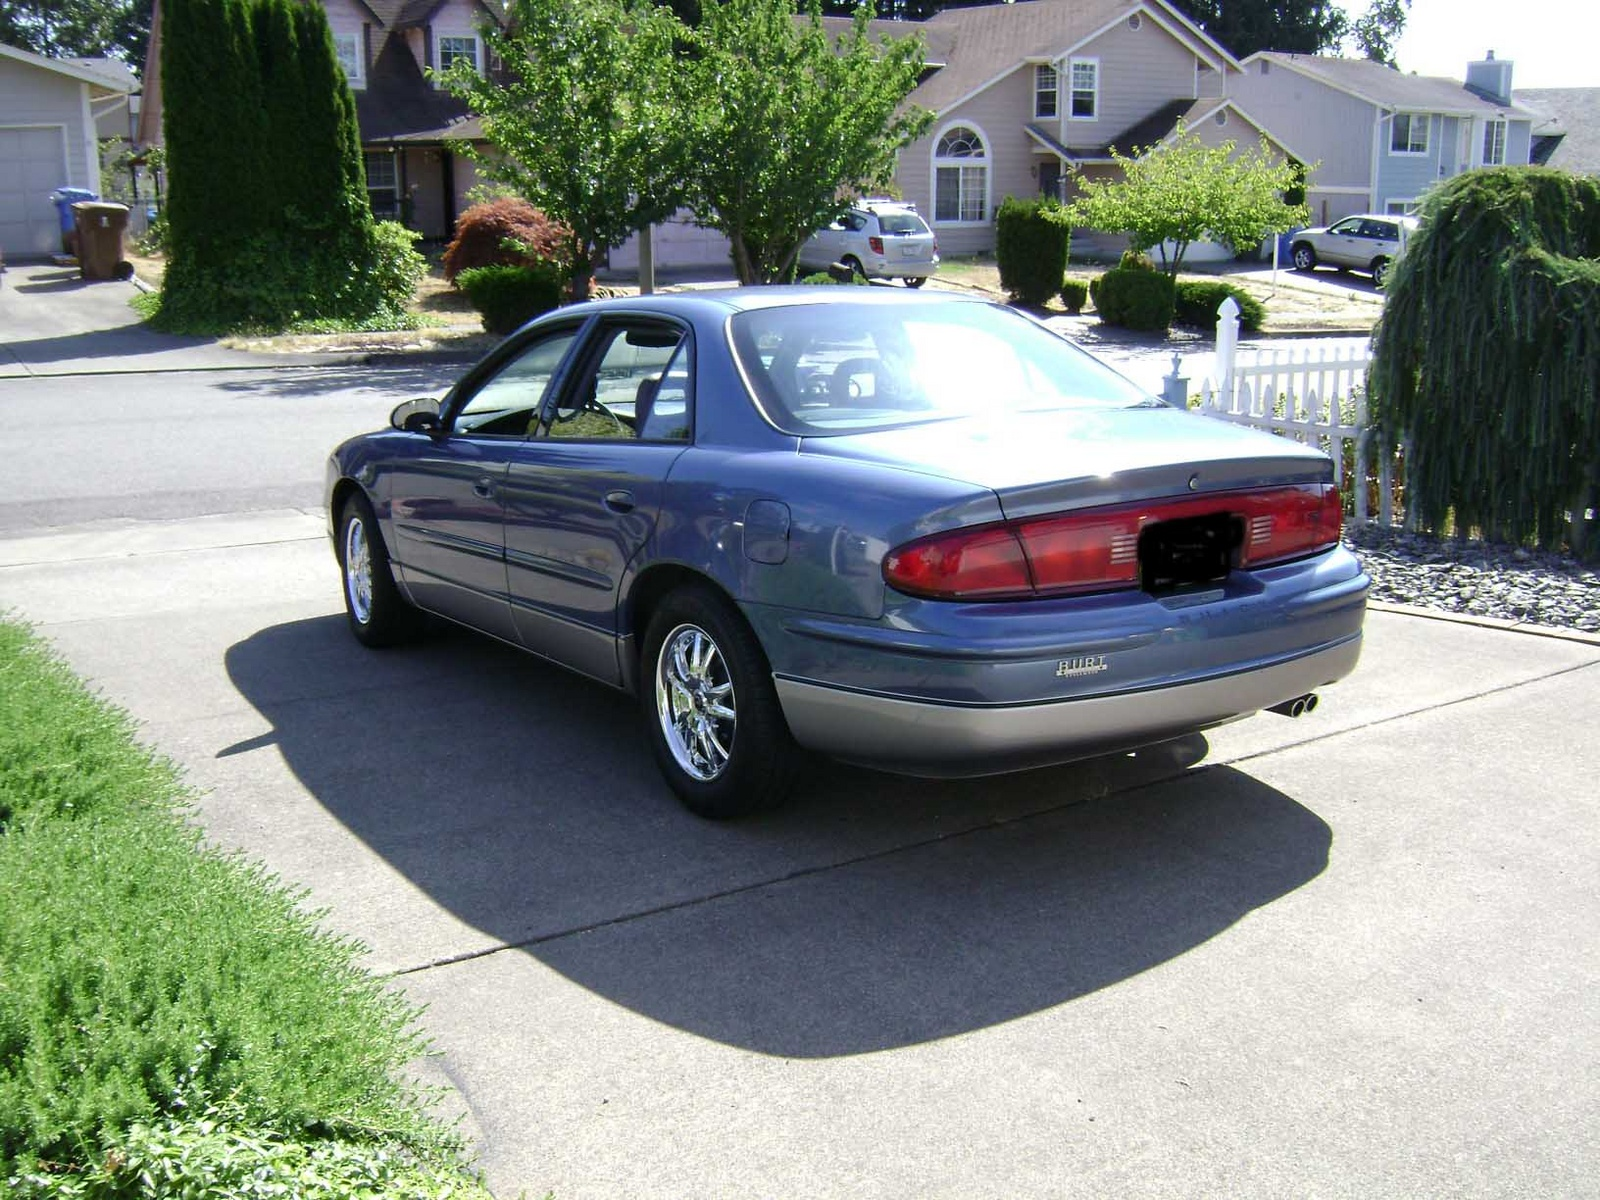 1998 Buick Regal - Pictures